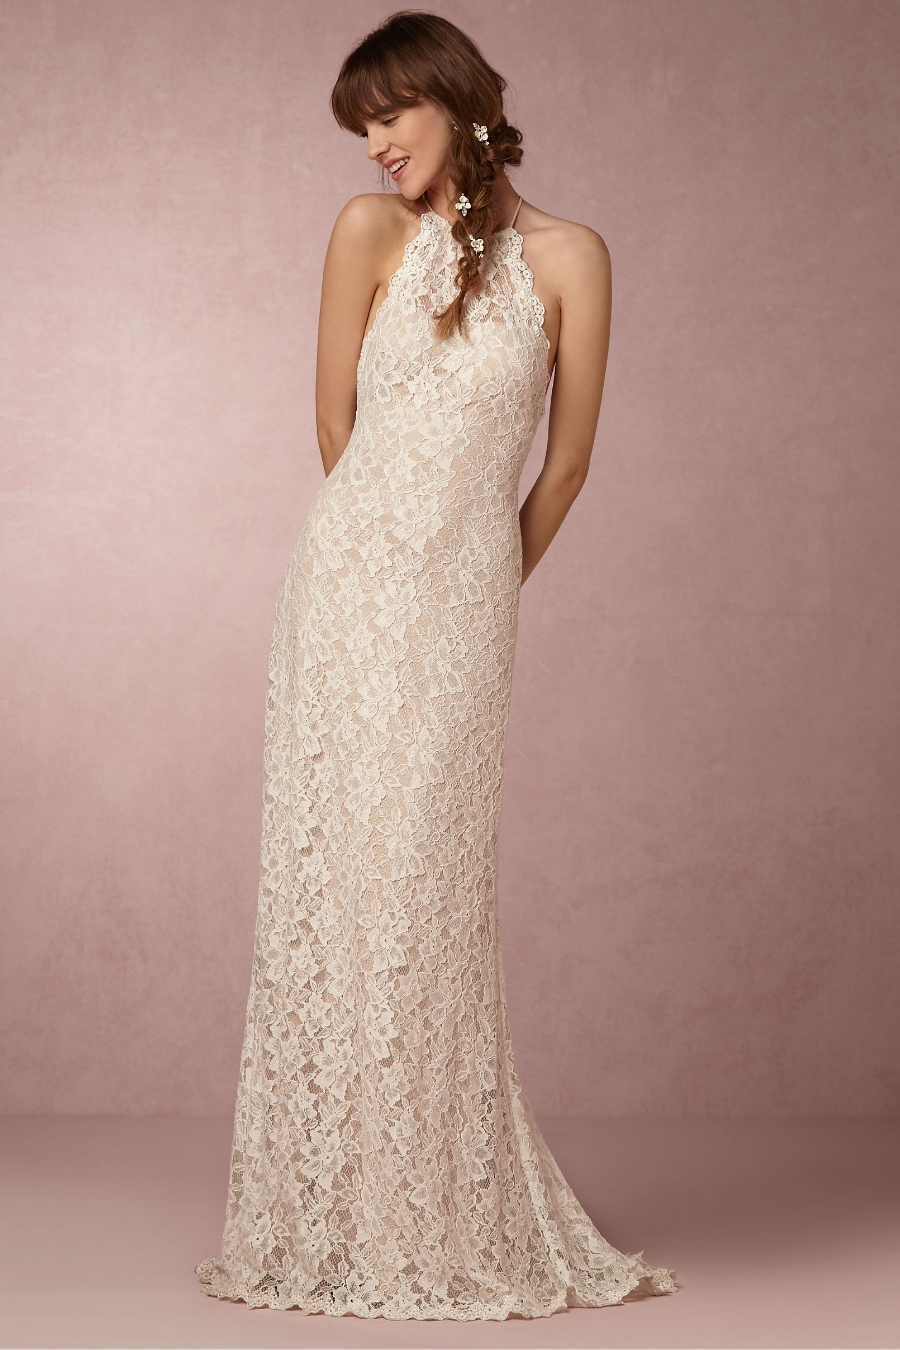 Mina Gown, $700 from BHLDN